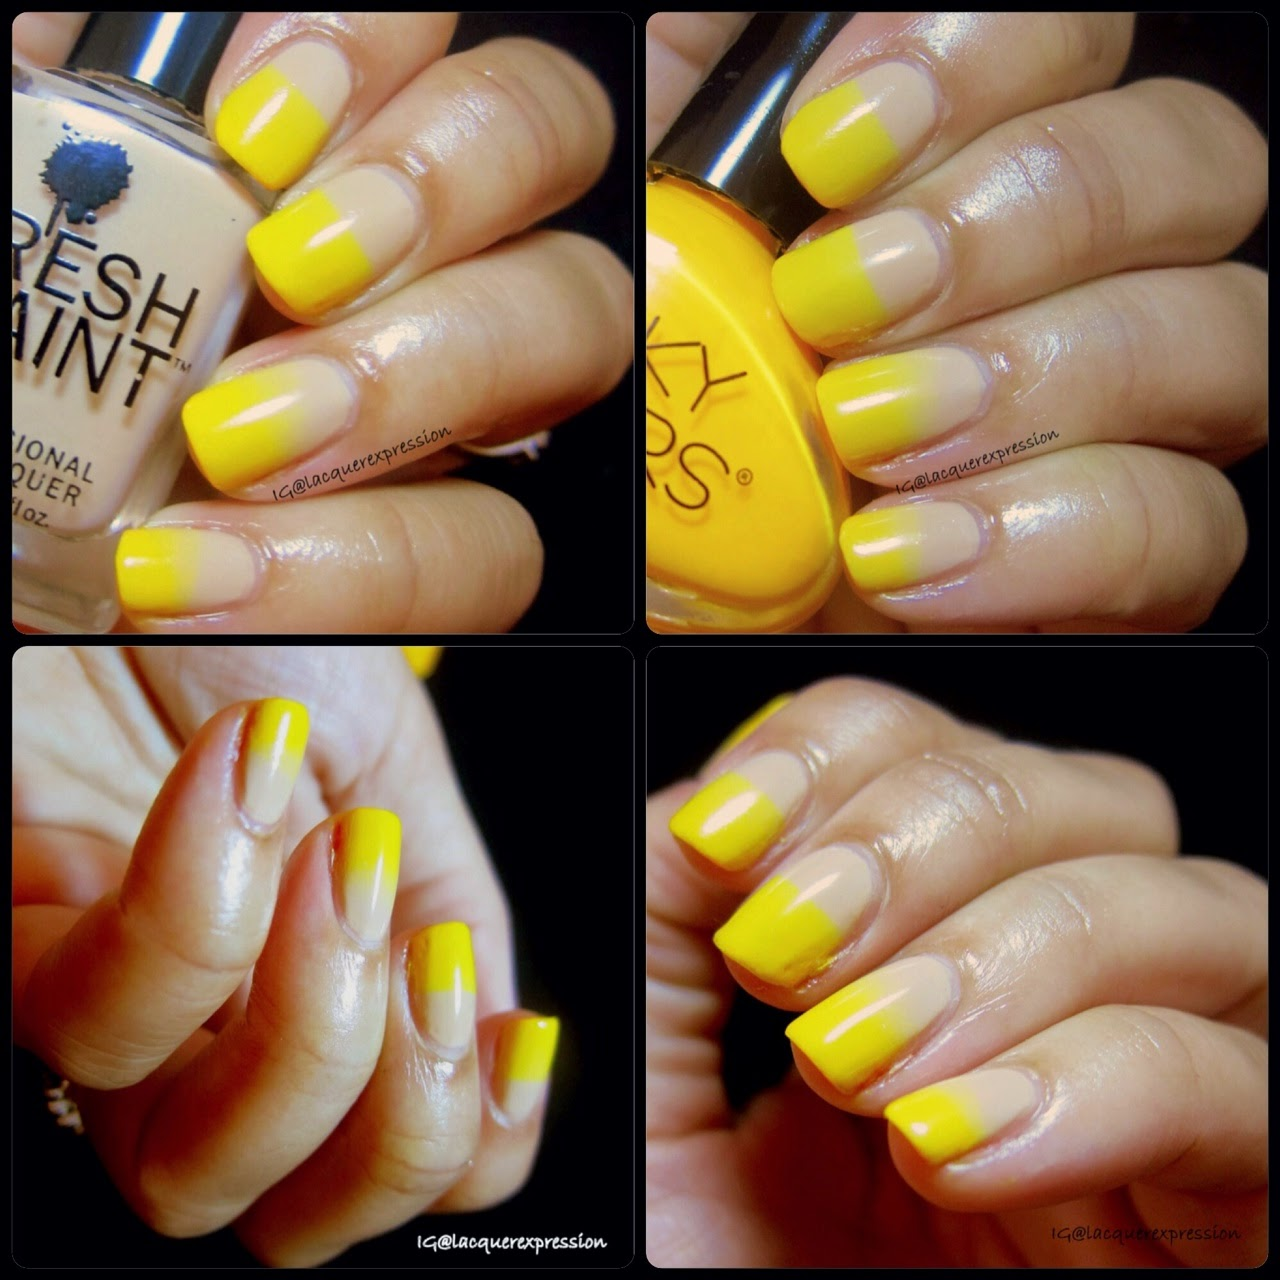 Nail Art Yellow Nails For Instagrams 31 Day Challenge